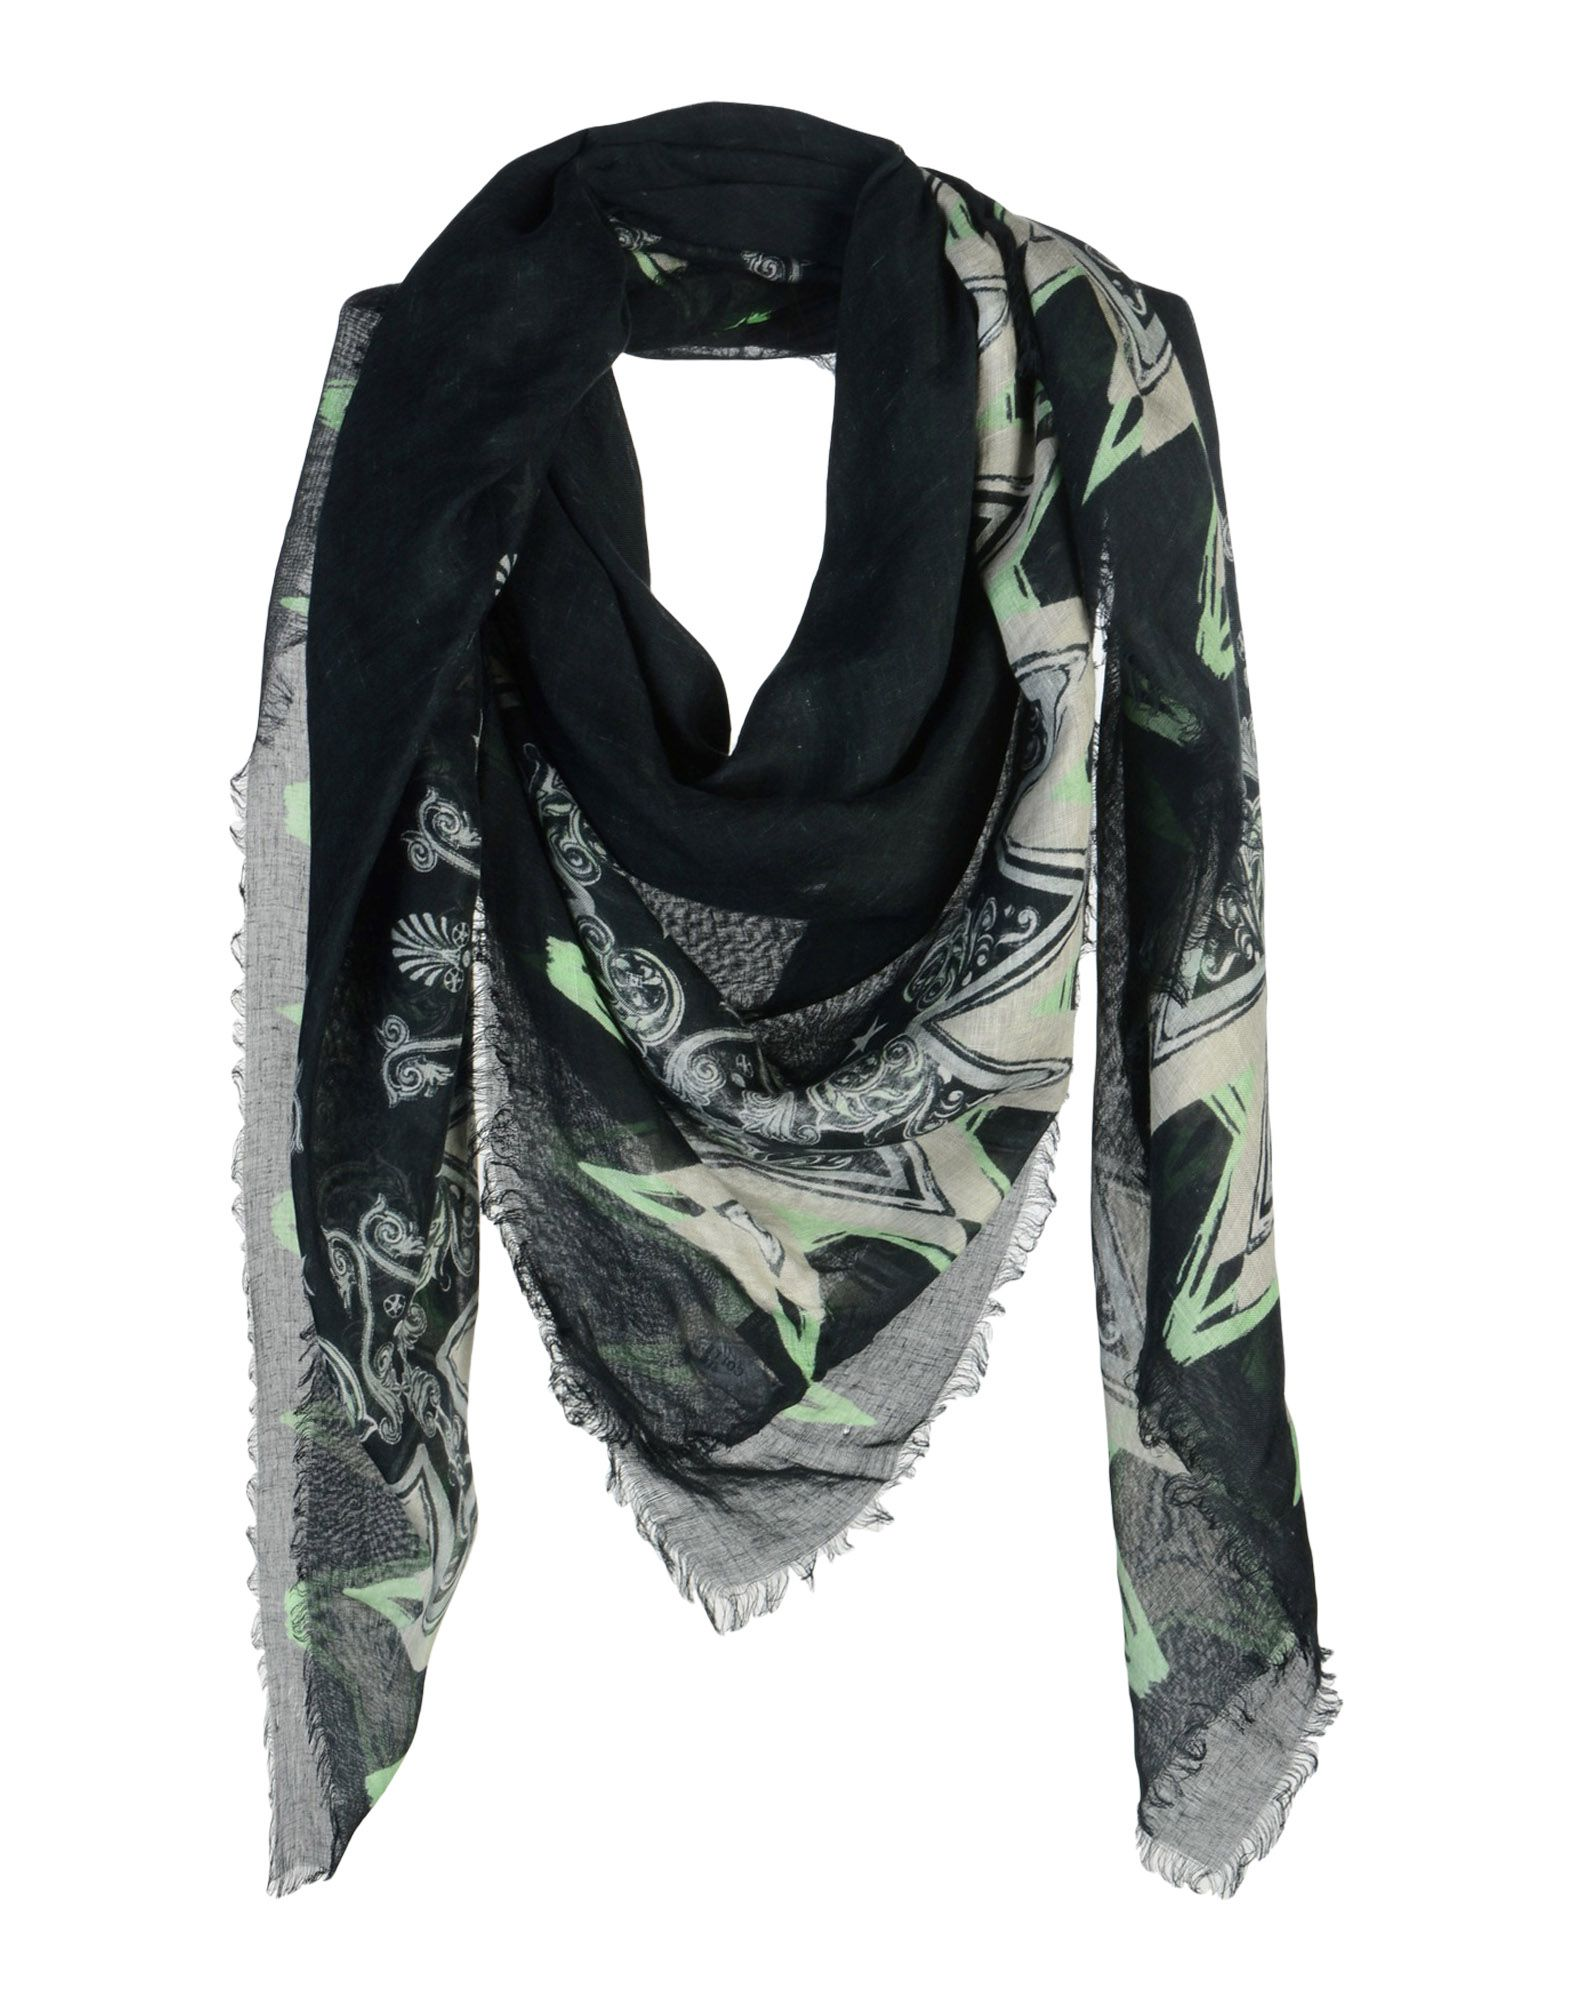 Collection Acquista Foulard su online Versace Uomo FO8zn5qwUx